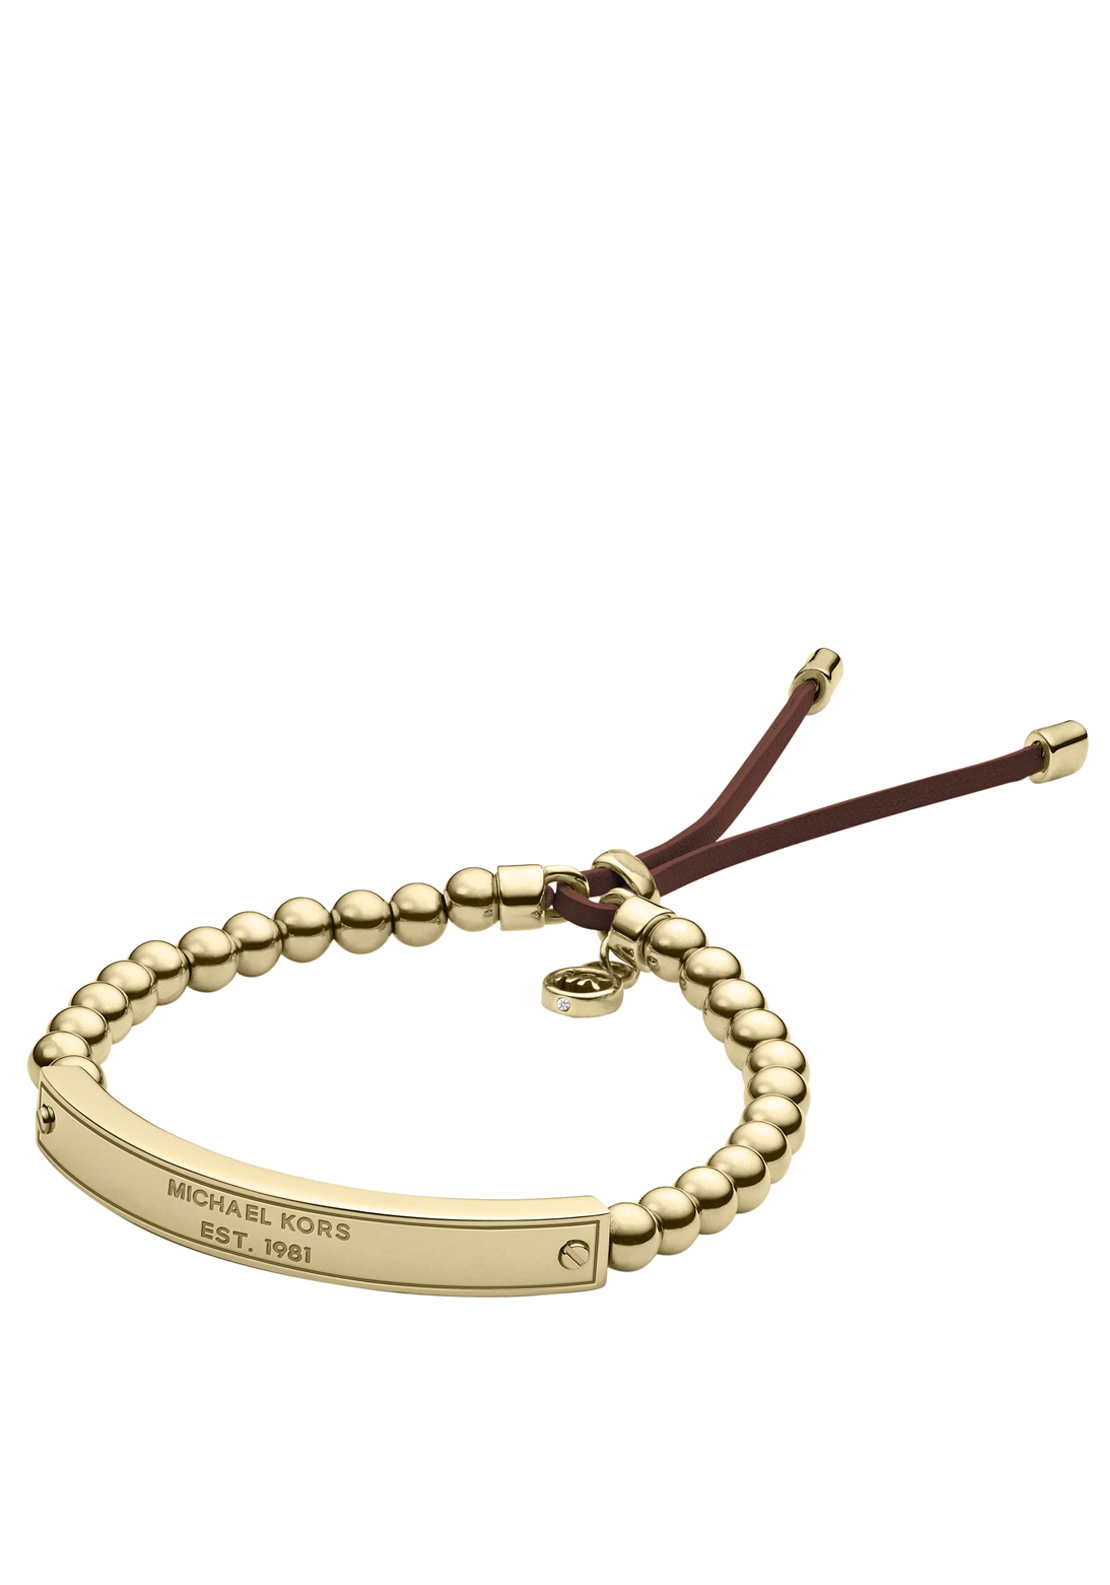 Michael Kors Womens Plaque Stretch Bracelet, Gold